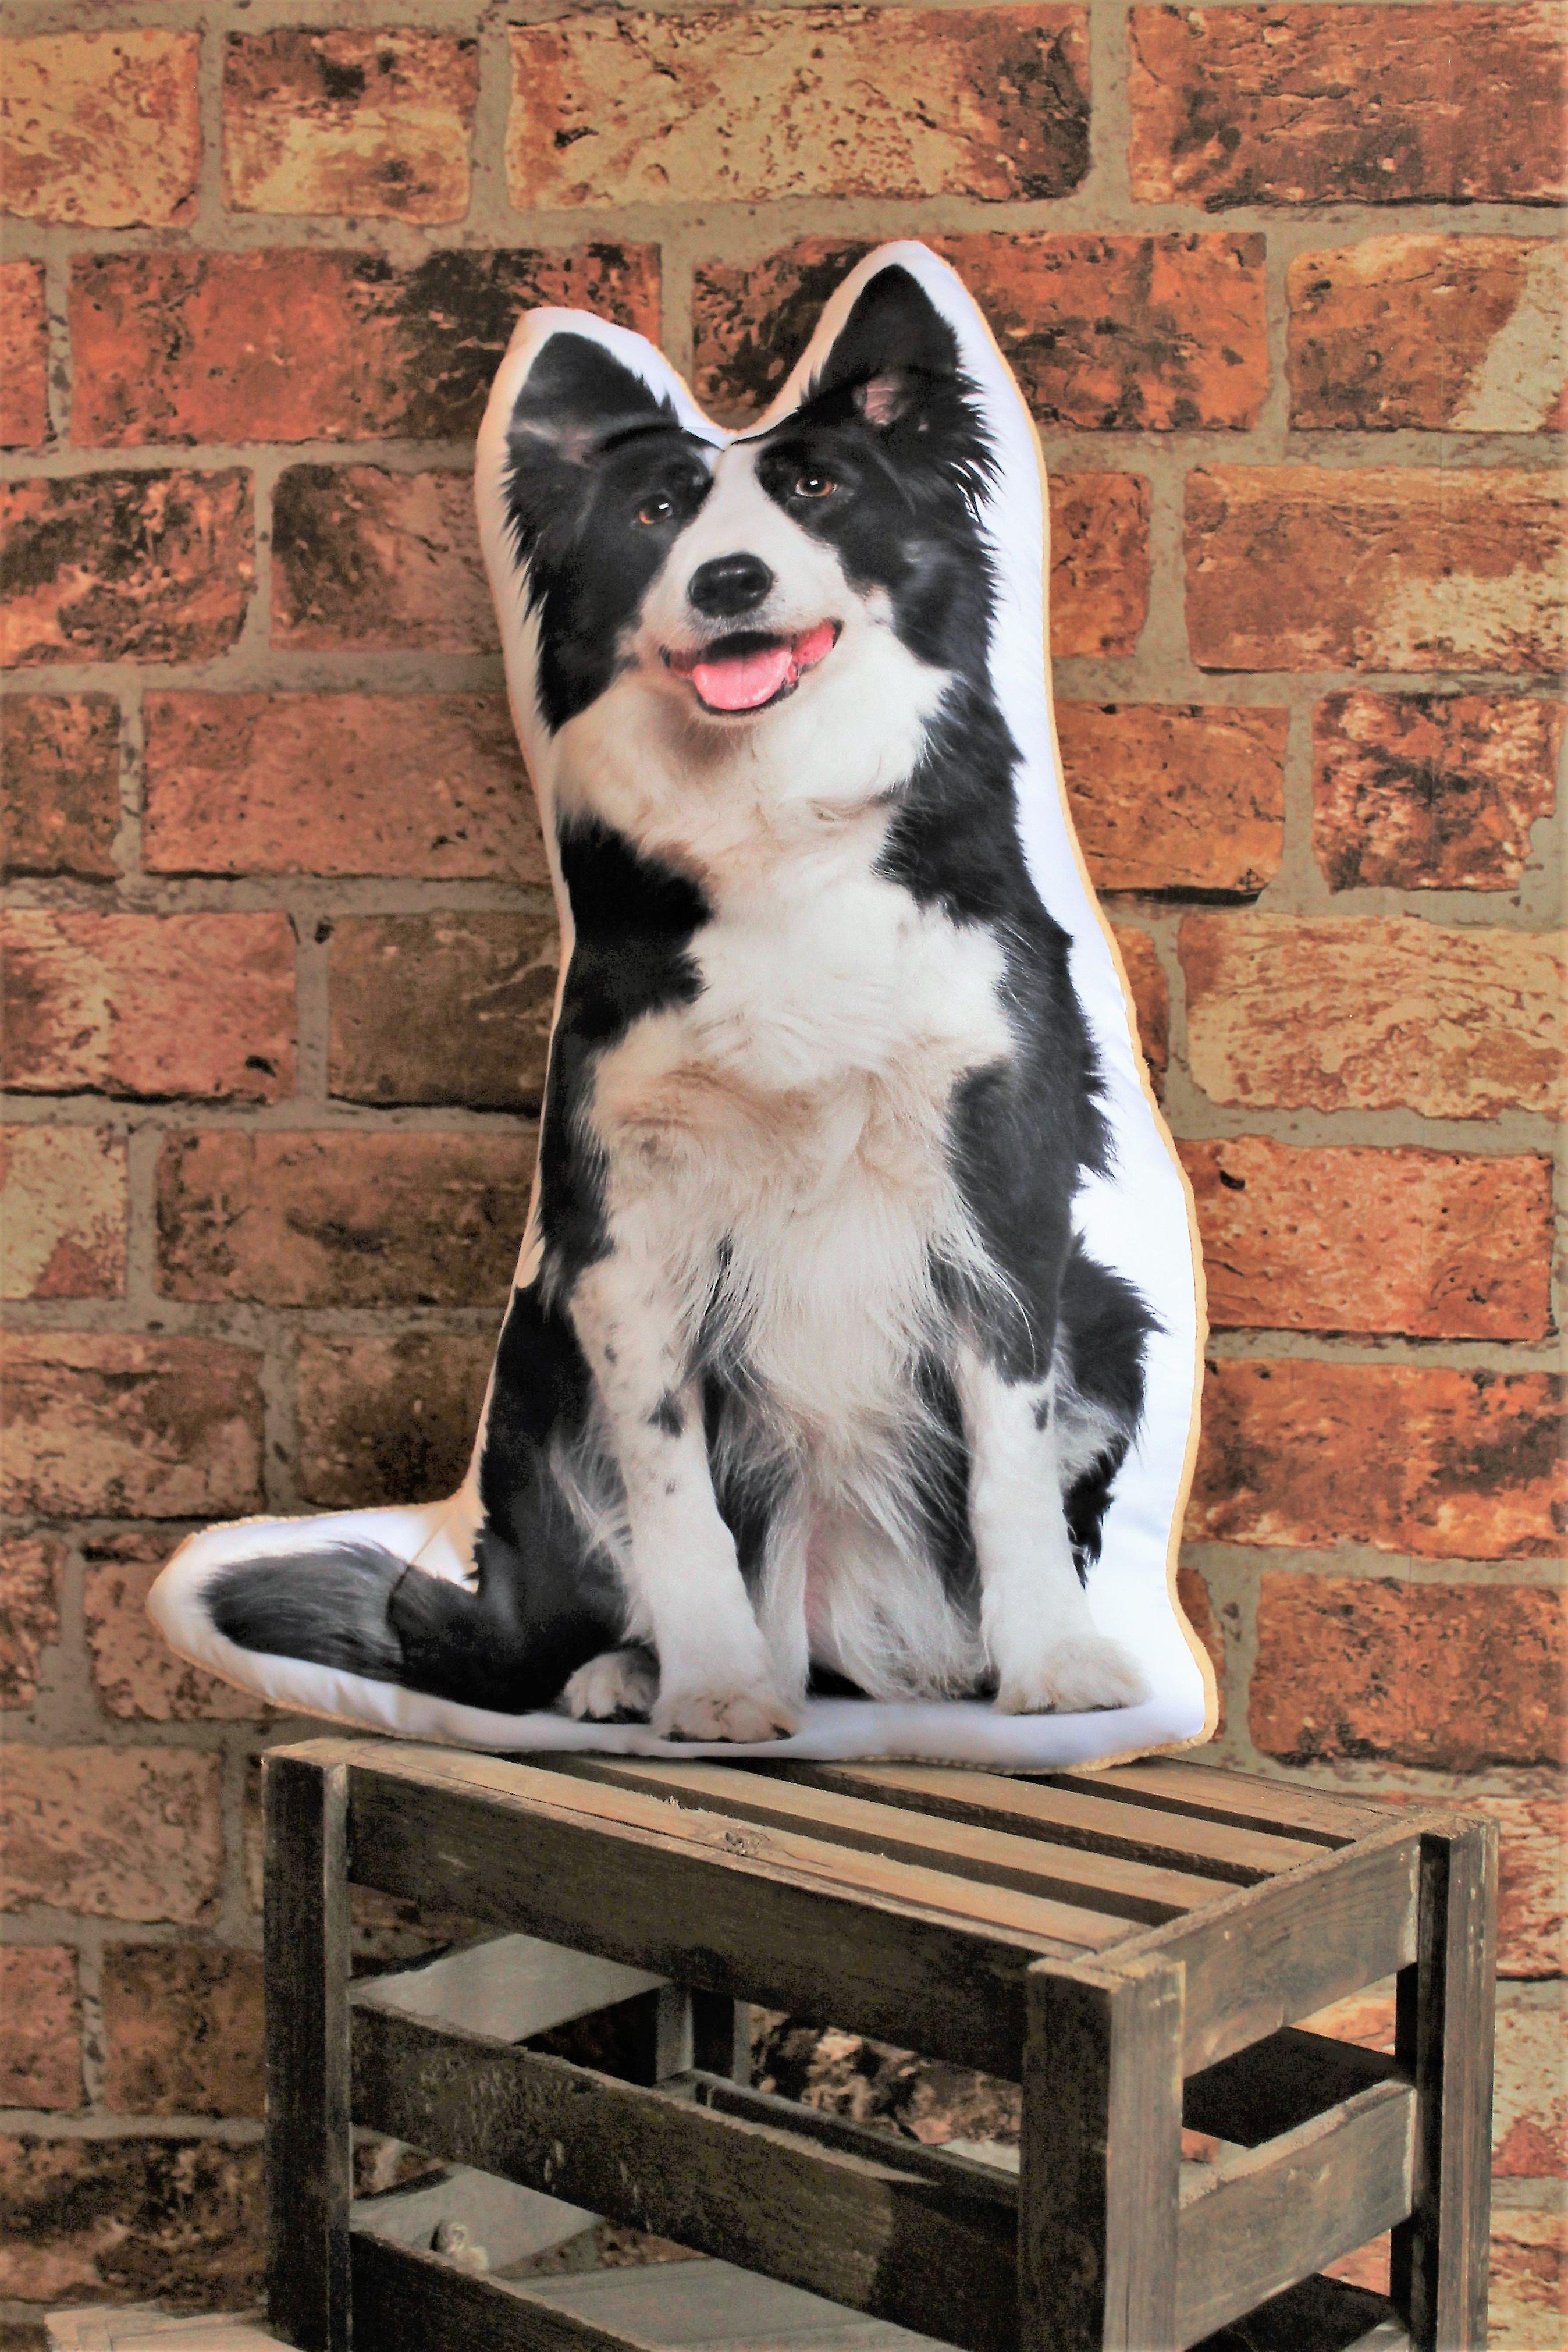 Adorable border collie shaped cushion